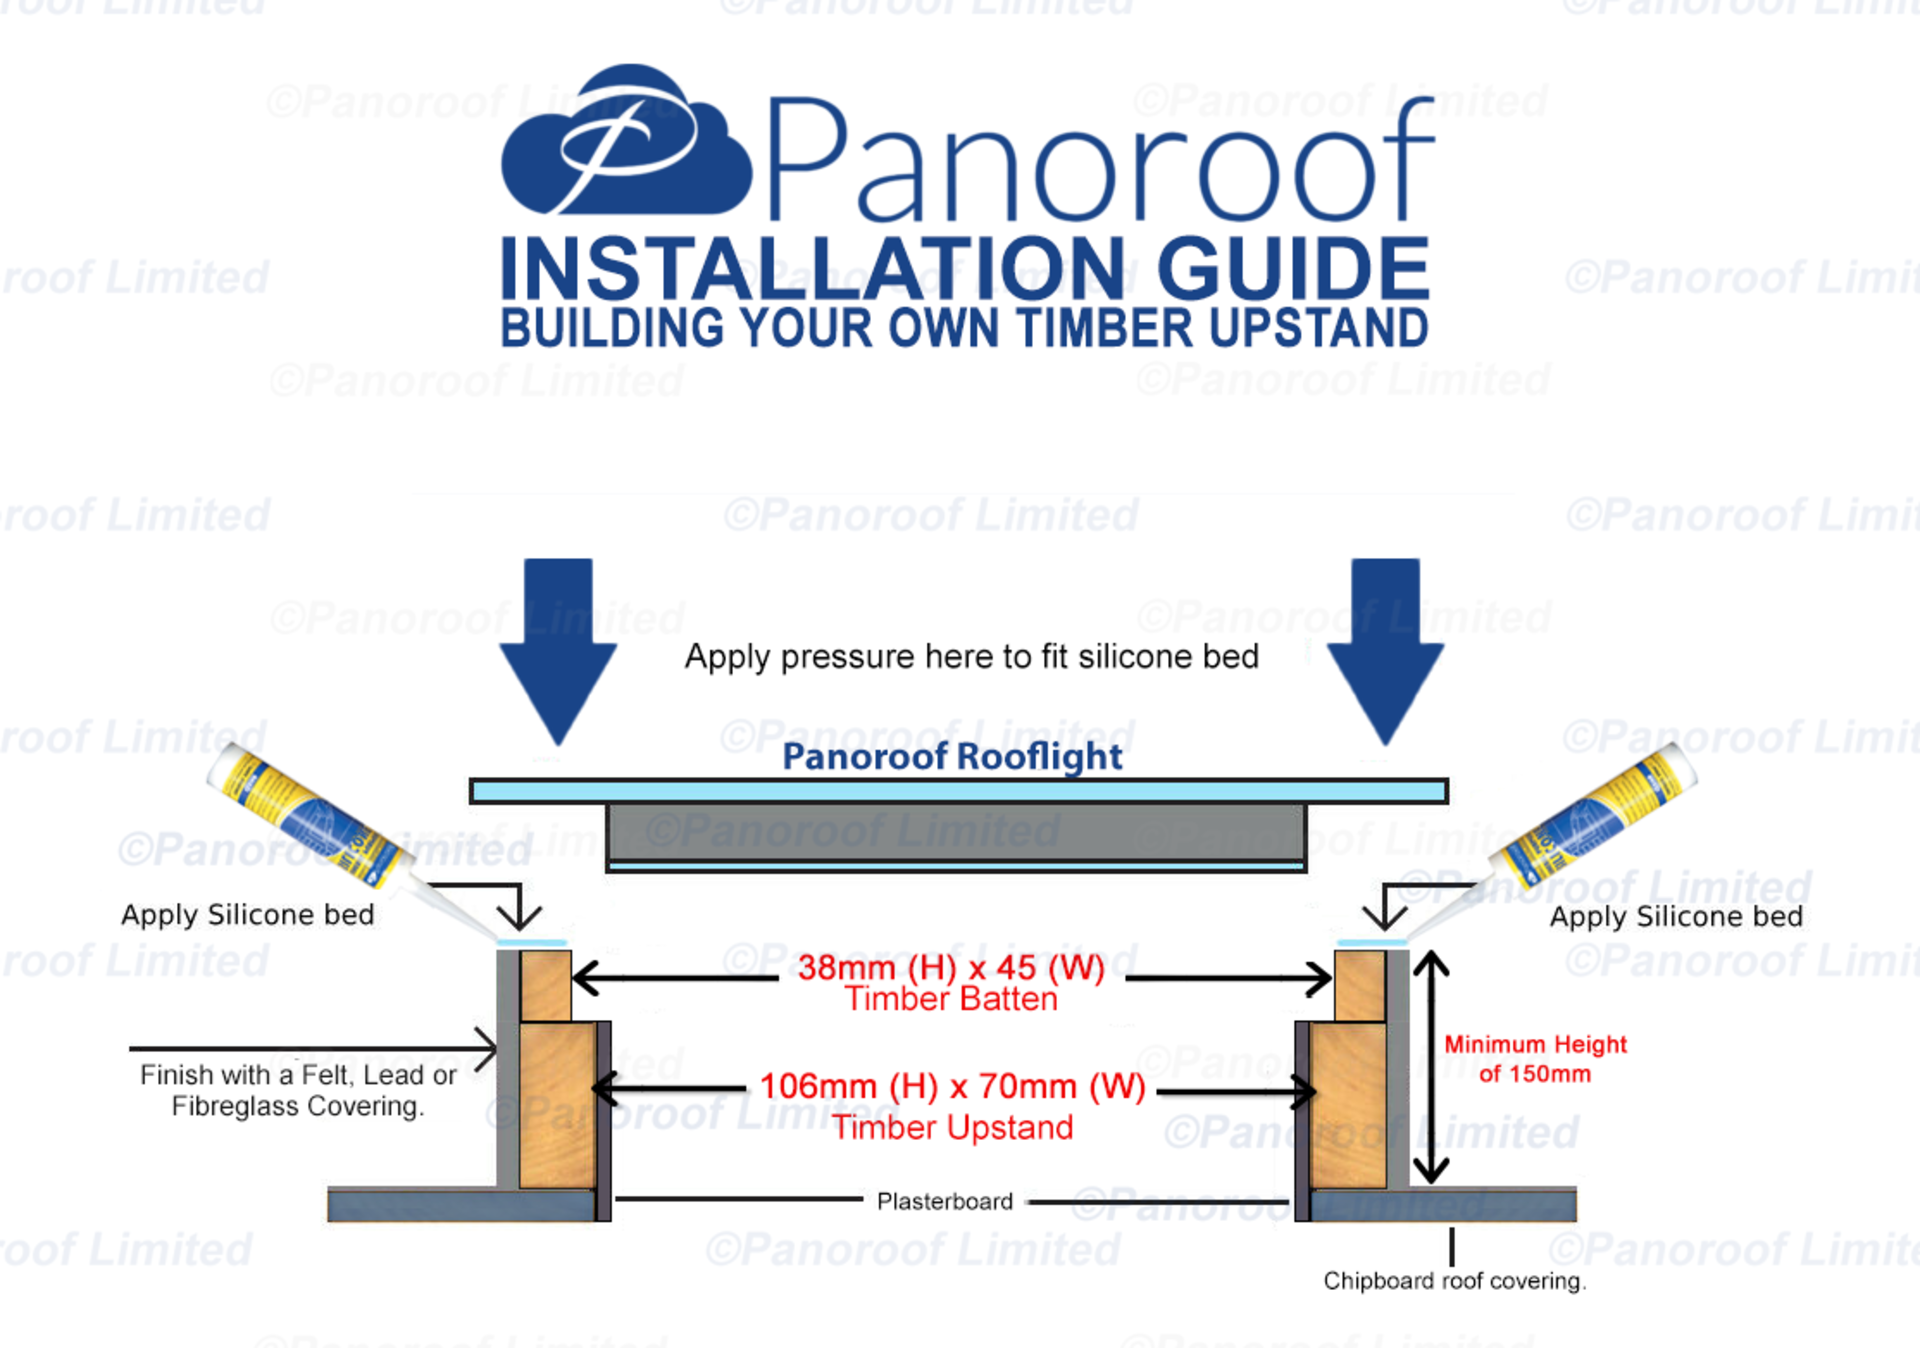 Panoroof 600x3500mm (inside Size Visable glass area) Seamless Glass Skylight Flat Roof Rooflight U - Image 3 of 6